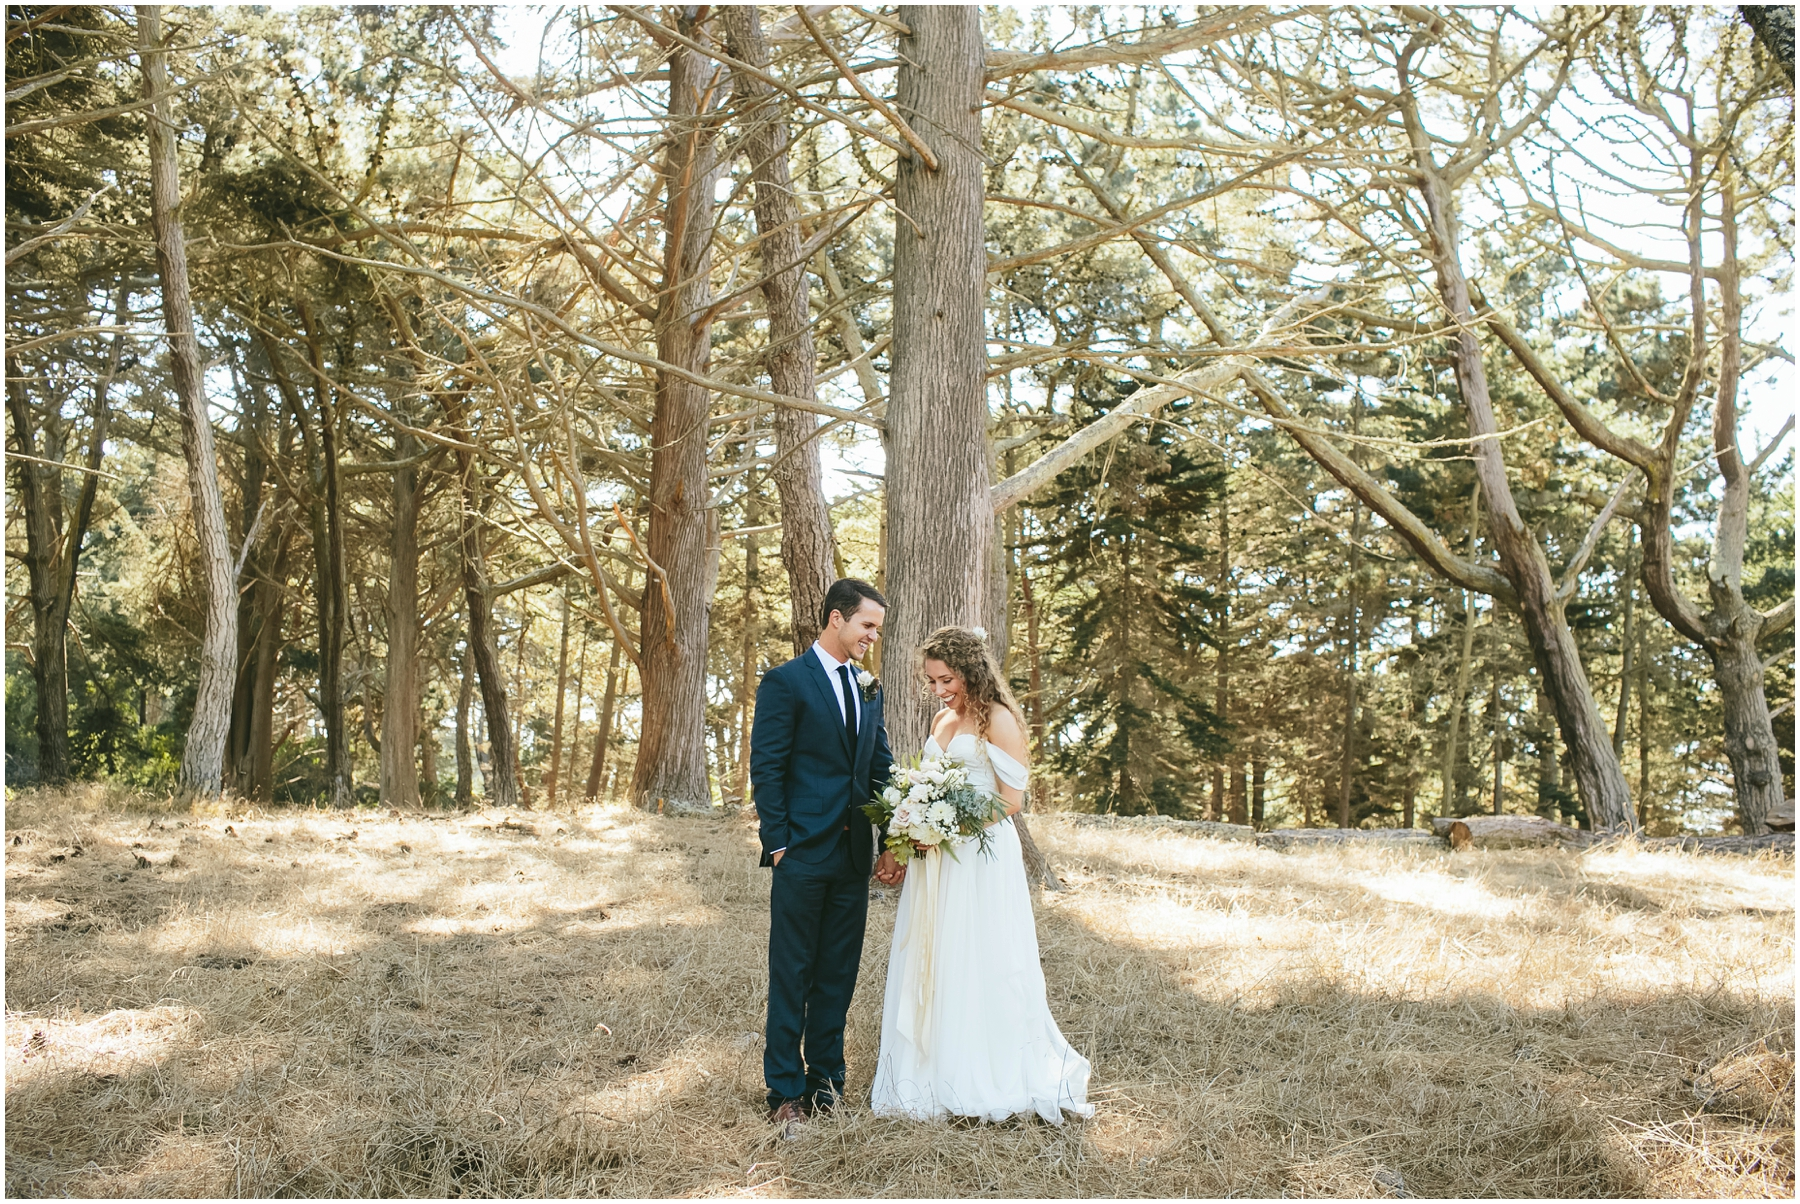 Emily+Paul-WEDDING_KellyBoitanoPhotography_0036